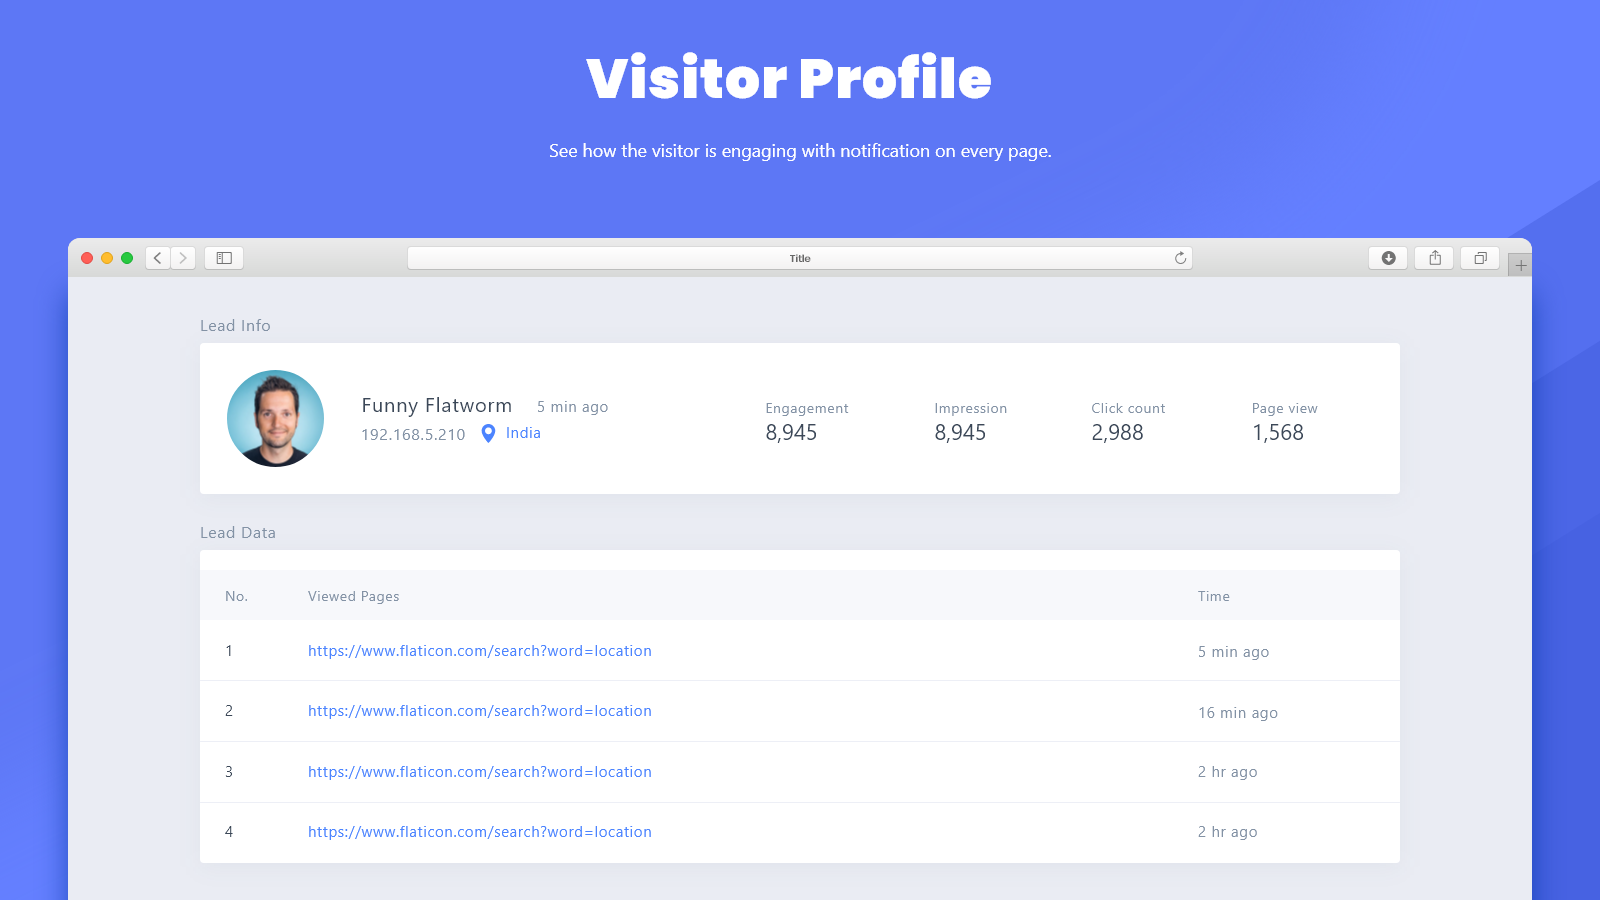 See visitor's page visit history & engage with notifications